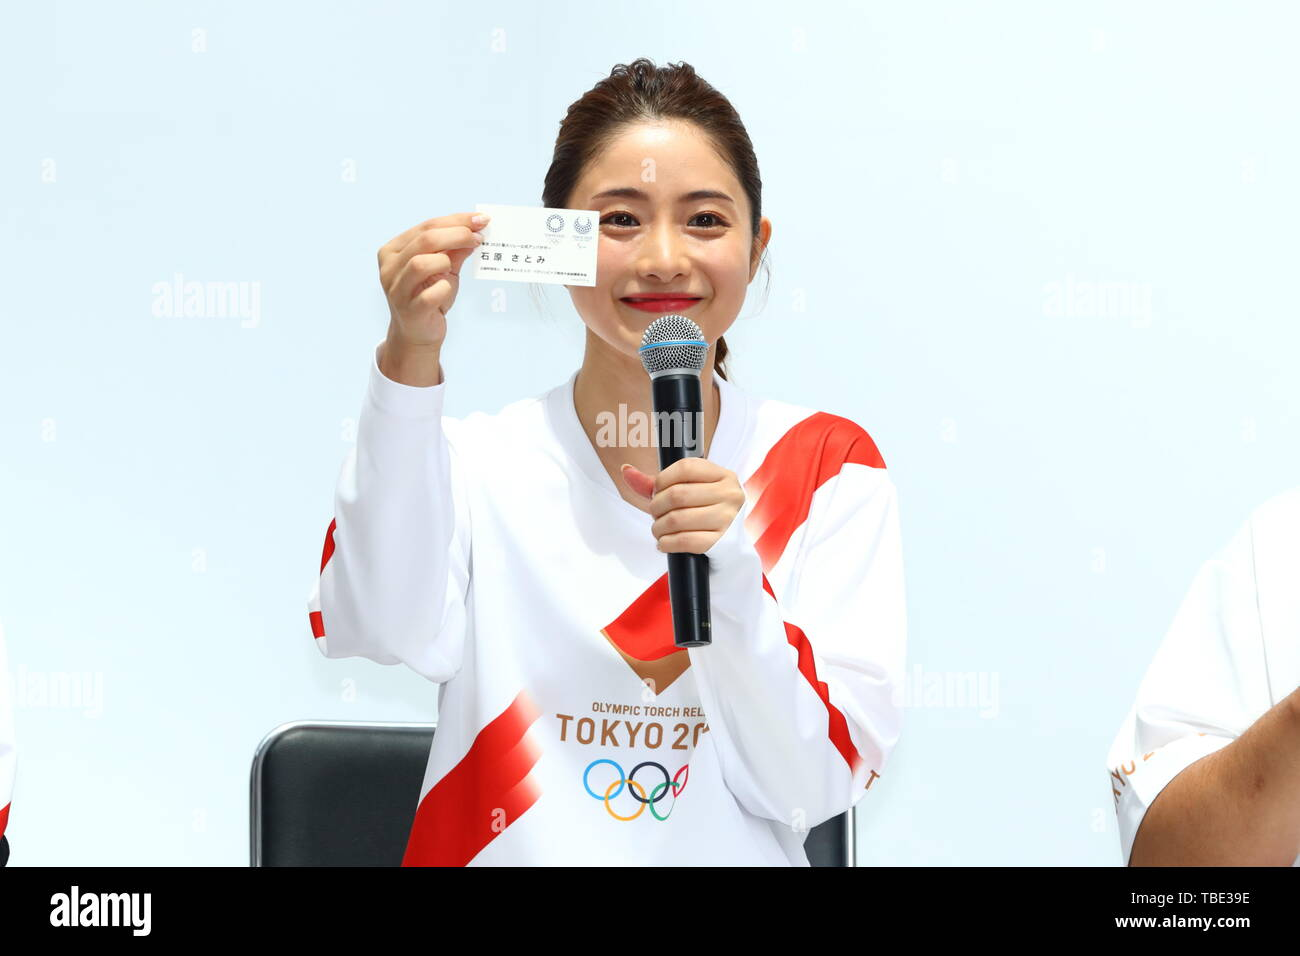 Tokyo, Japan. 1st June, 2019. Satomi Ishihara, The Tokyo Organising Committee of the Olympic and Paralympic Games (Tokyo 2020) holds commemorative event of Torch Relay in Tokyo, Japan on June 1, 2019, 300 days before of the Japanese leg of the Tokyo 2020 Olympic Torch Relay starts. The Organising Committee unveiled an official uniform, course outline and applicant guidelines for Torch Relay Runners. Credit: Naoki Nishimura/AFLO SPORT/Alamy Live News - Stock Image